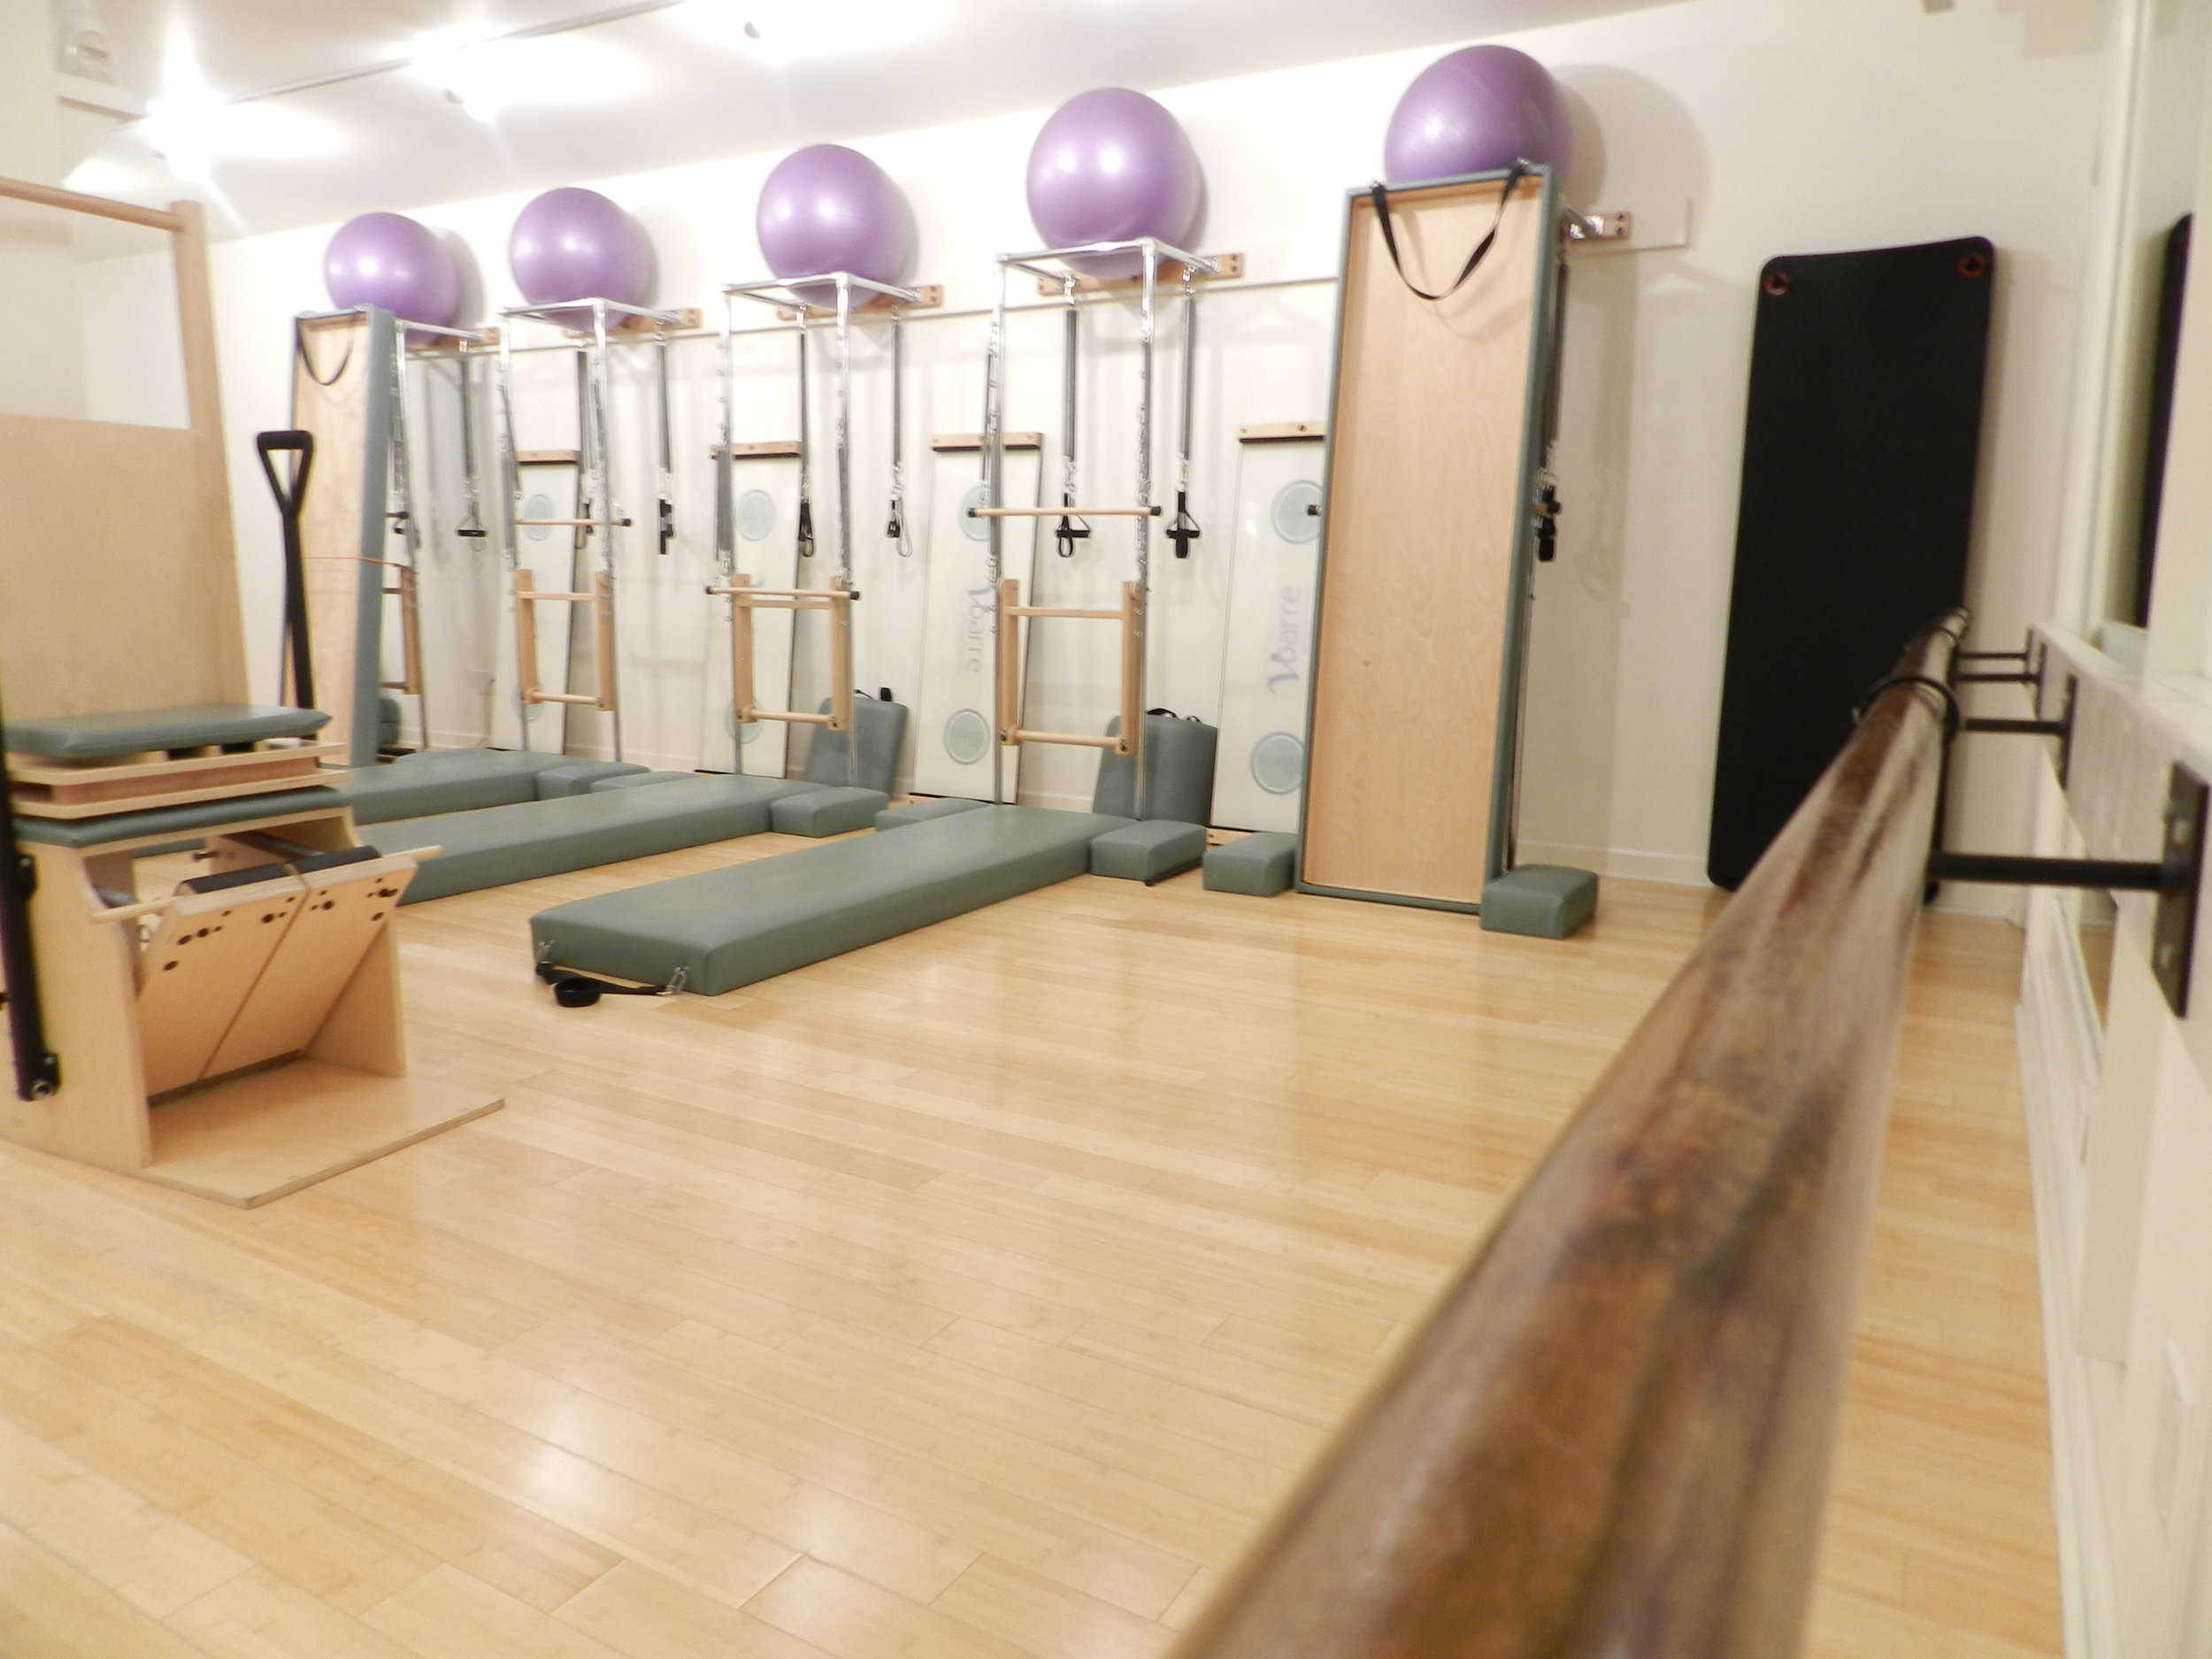 If you usually take Pilates mat classes, splurge on an apparatus class every now and then. Mix in some Barre classes for cardio and sculpting.